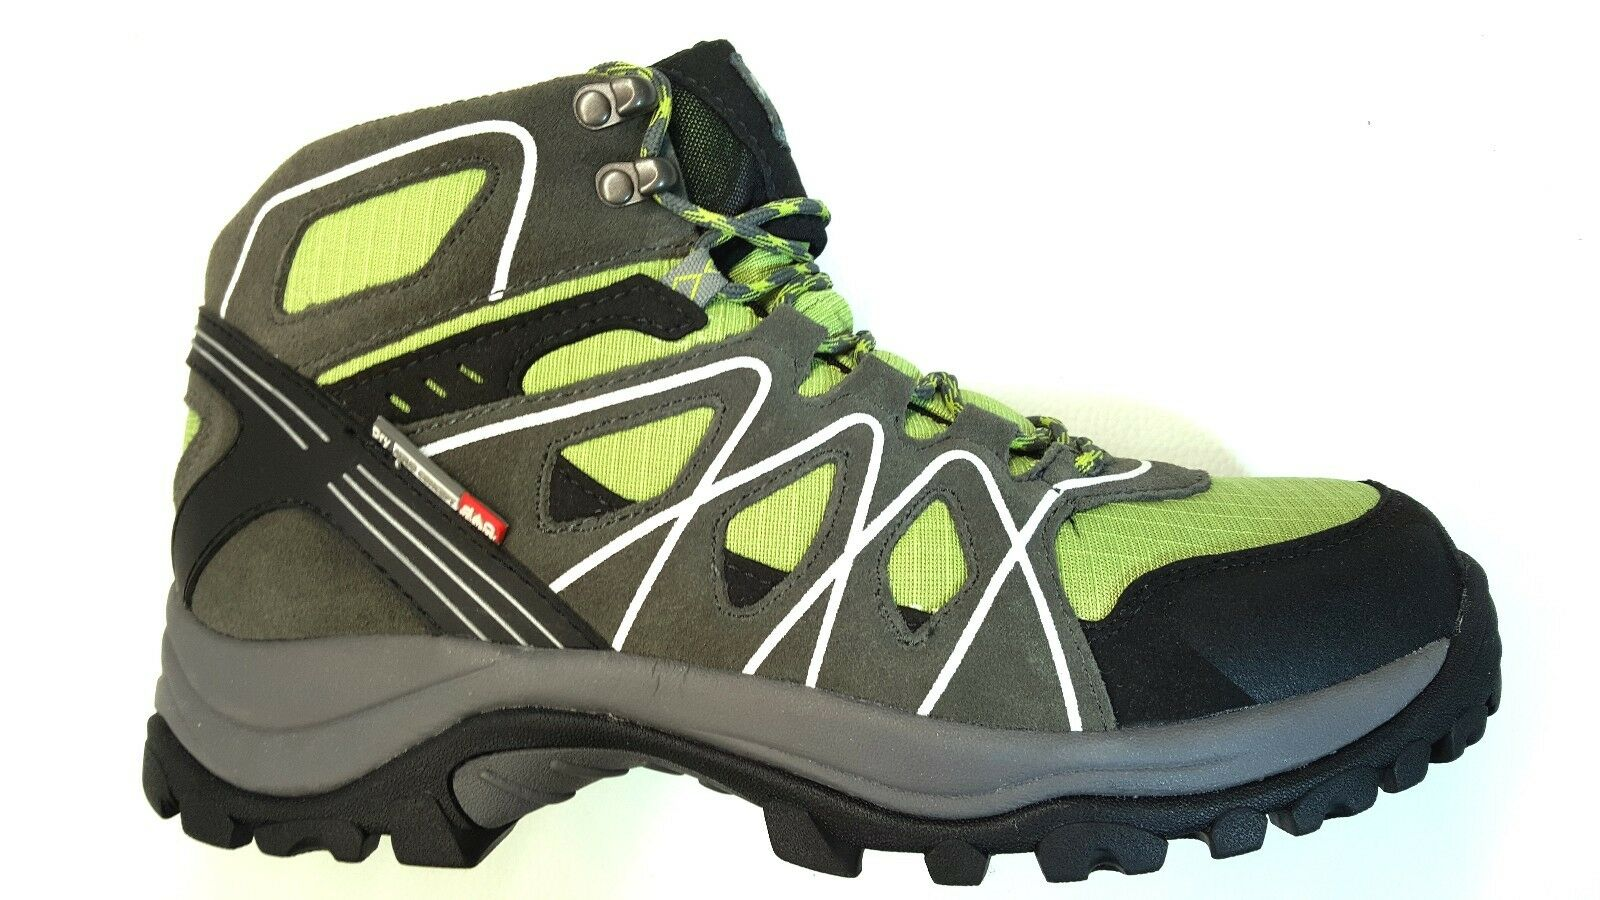 Altus Outdoor shoes Trekking shoes Hiking  Boots shoes Mens Waterproof Leather  trendy